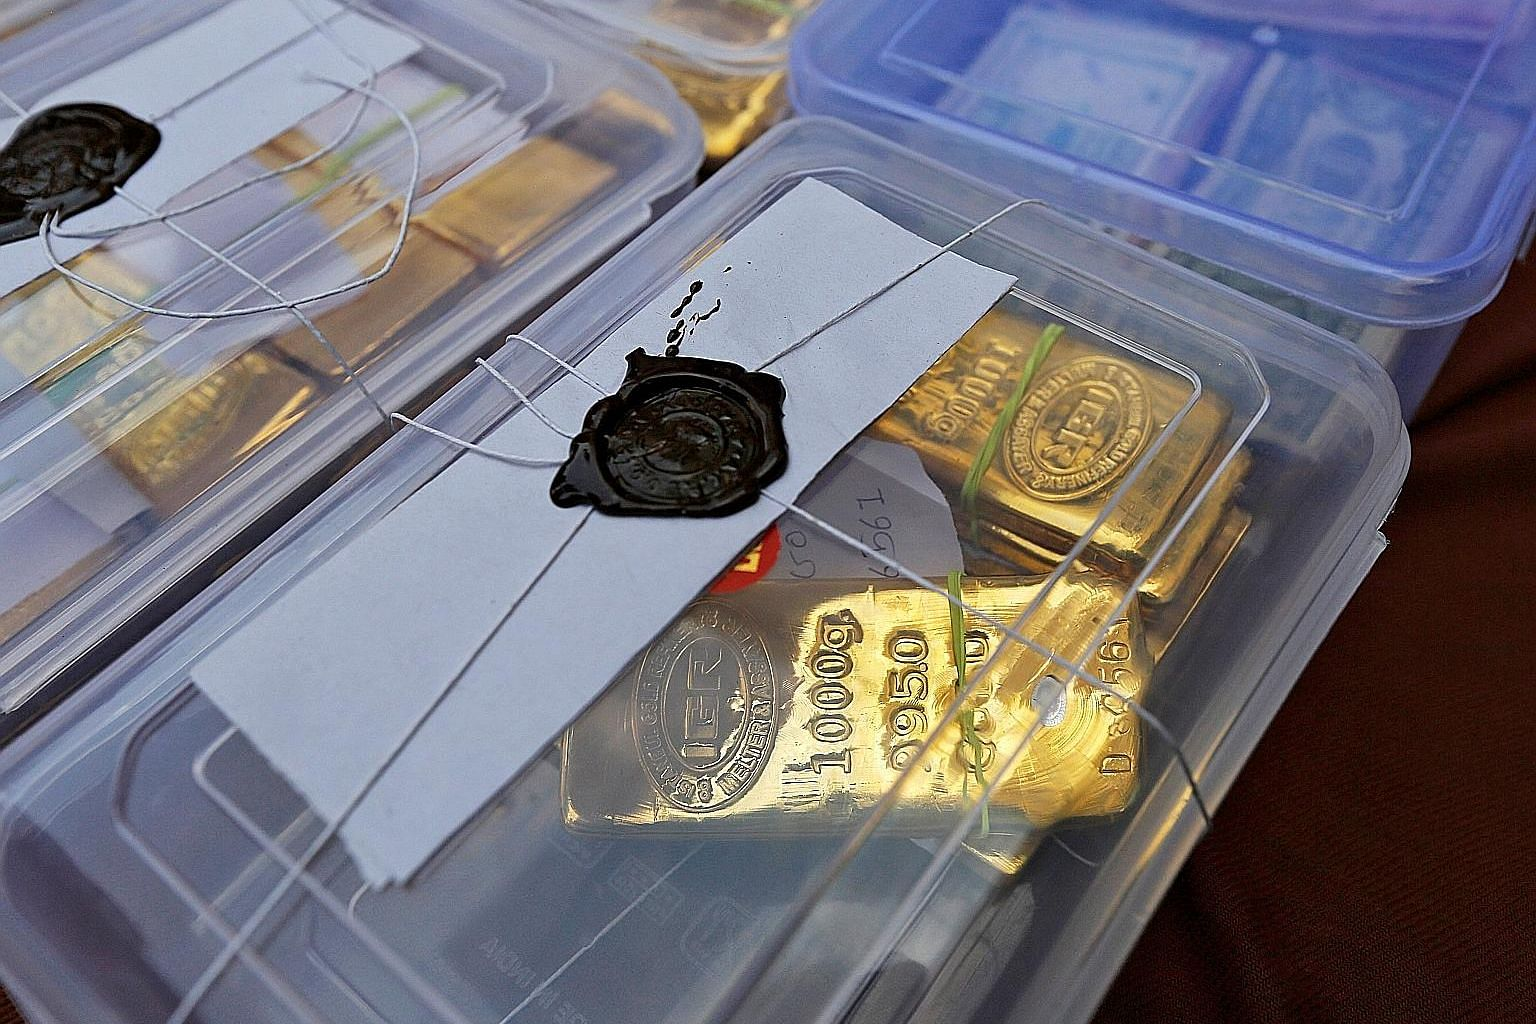 Seized gold bars on display at a police station in Ahmedabad city in India's western state of Gujarat in 2015. Gold smuggling is a major problem for the Indian authorities as the yellow metal is prized both as jewellery and as an investment for a rai